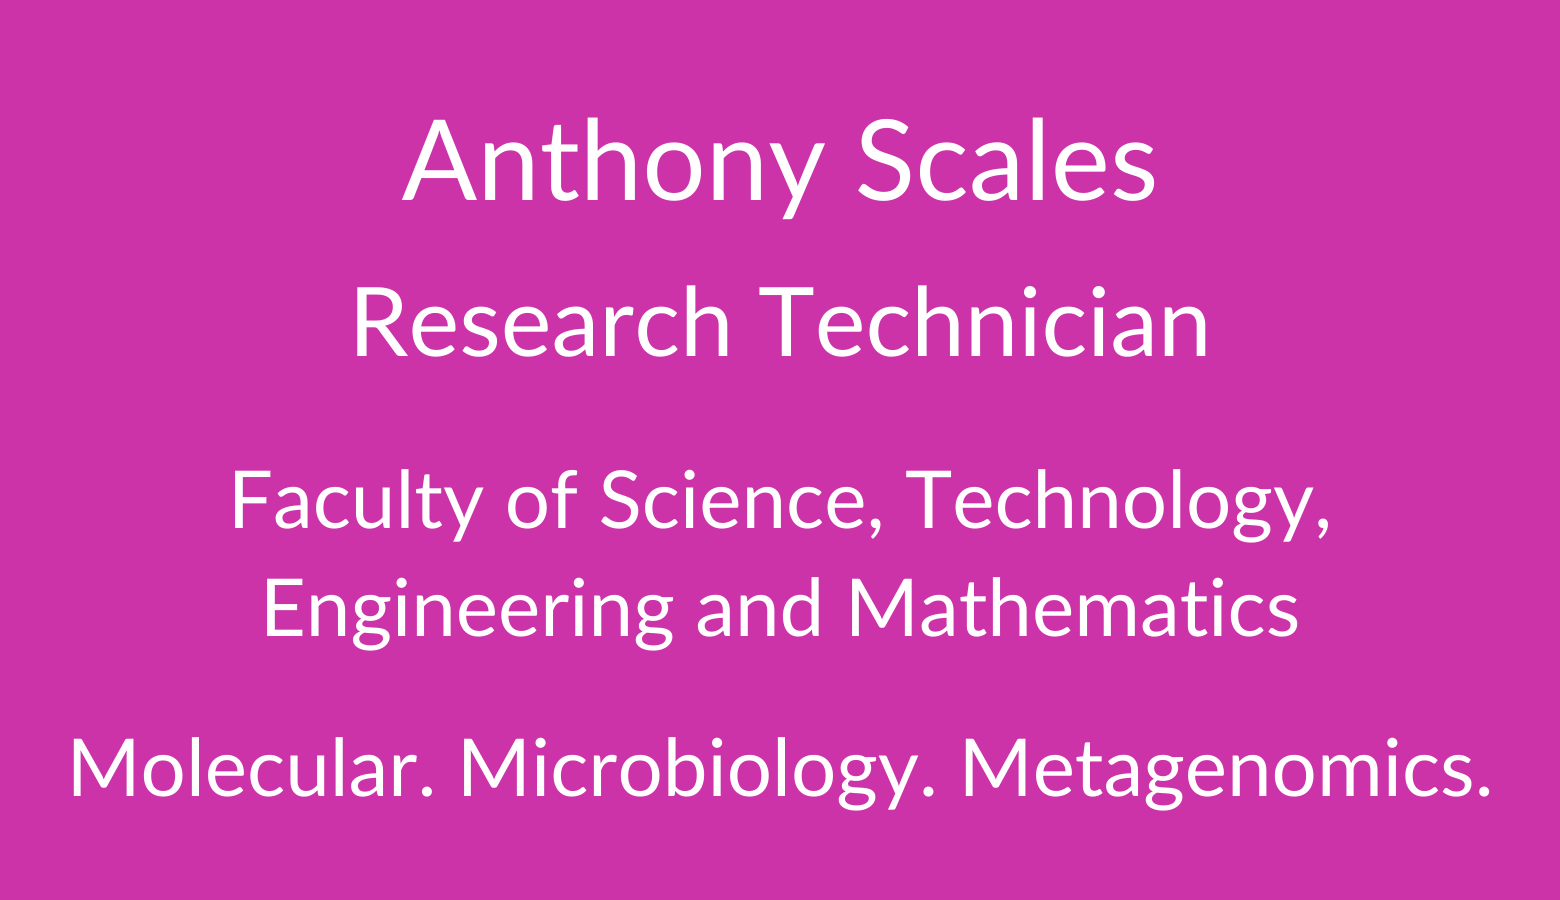 AstrobiologyOU Anthony Scales